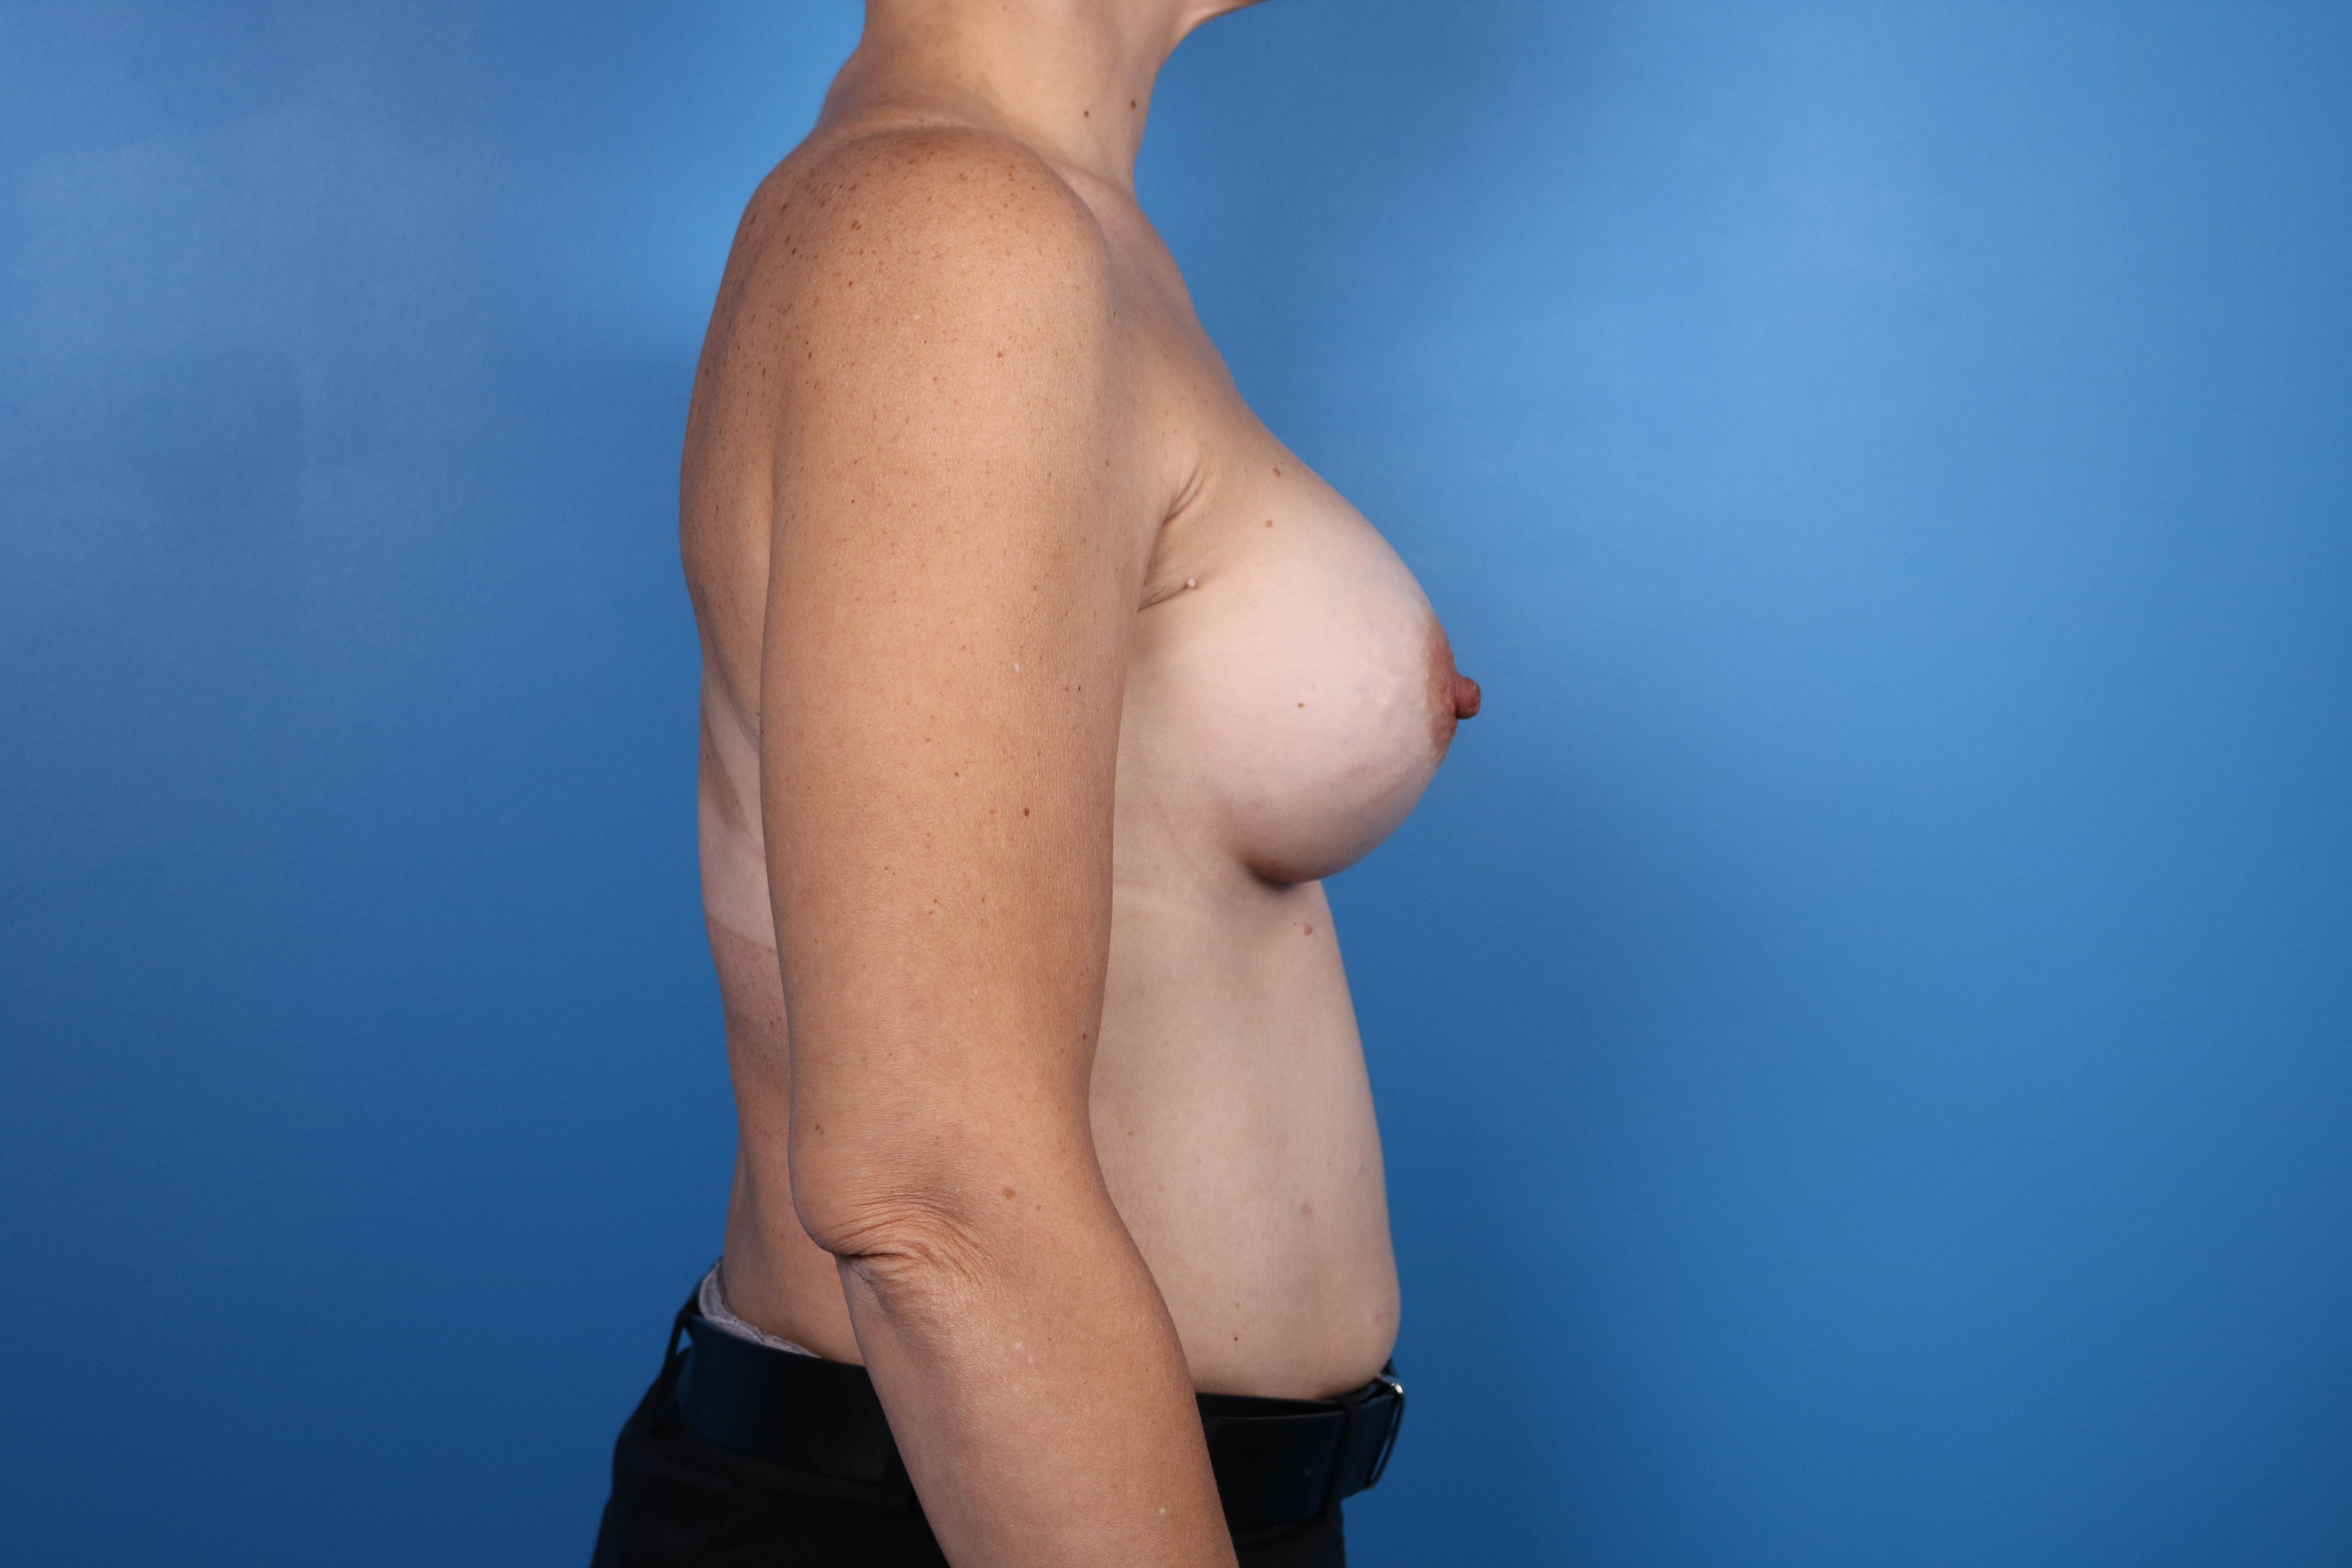 results from a breast implant procedure